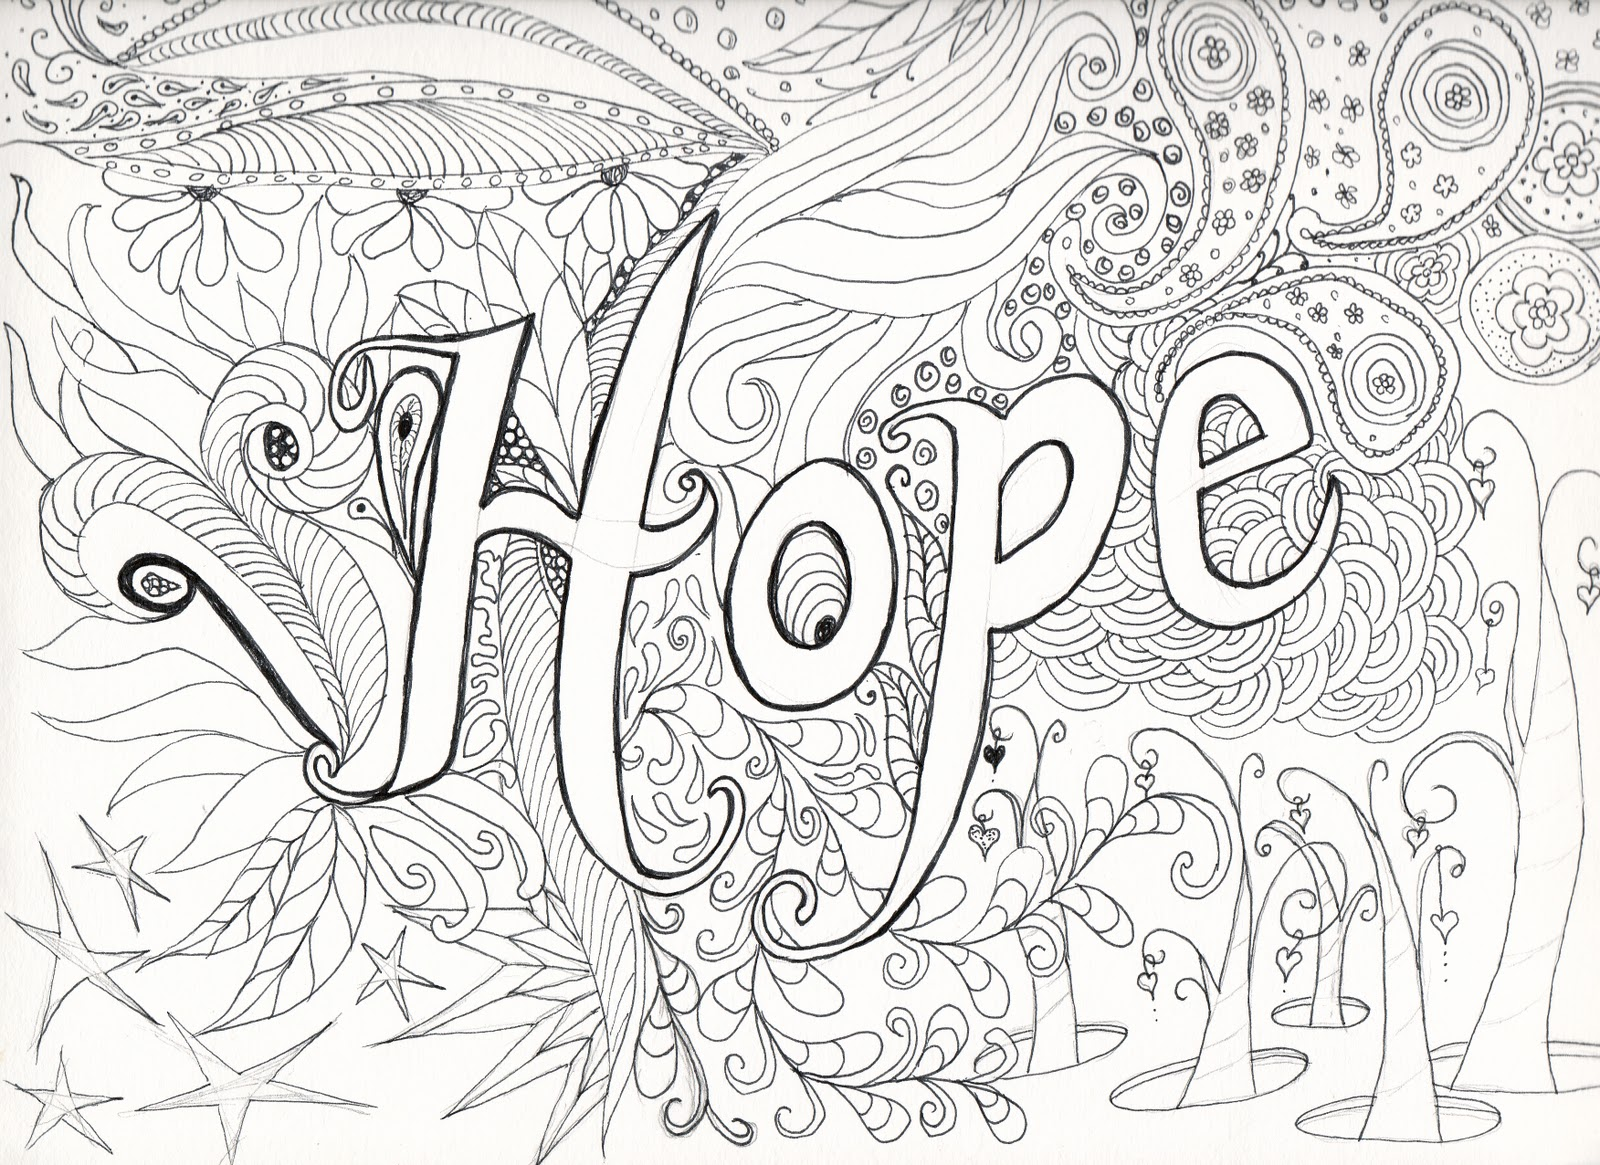 complex coloring pages - Printable Difficult Coloring Pages